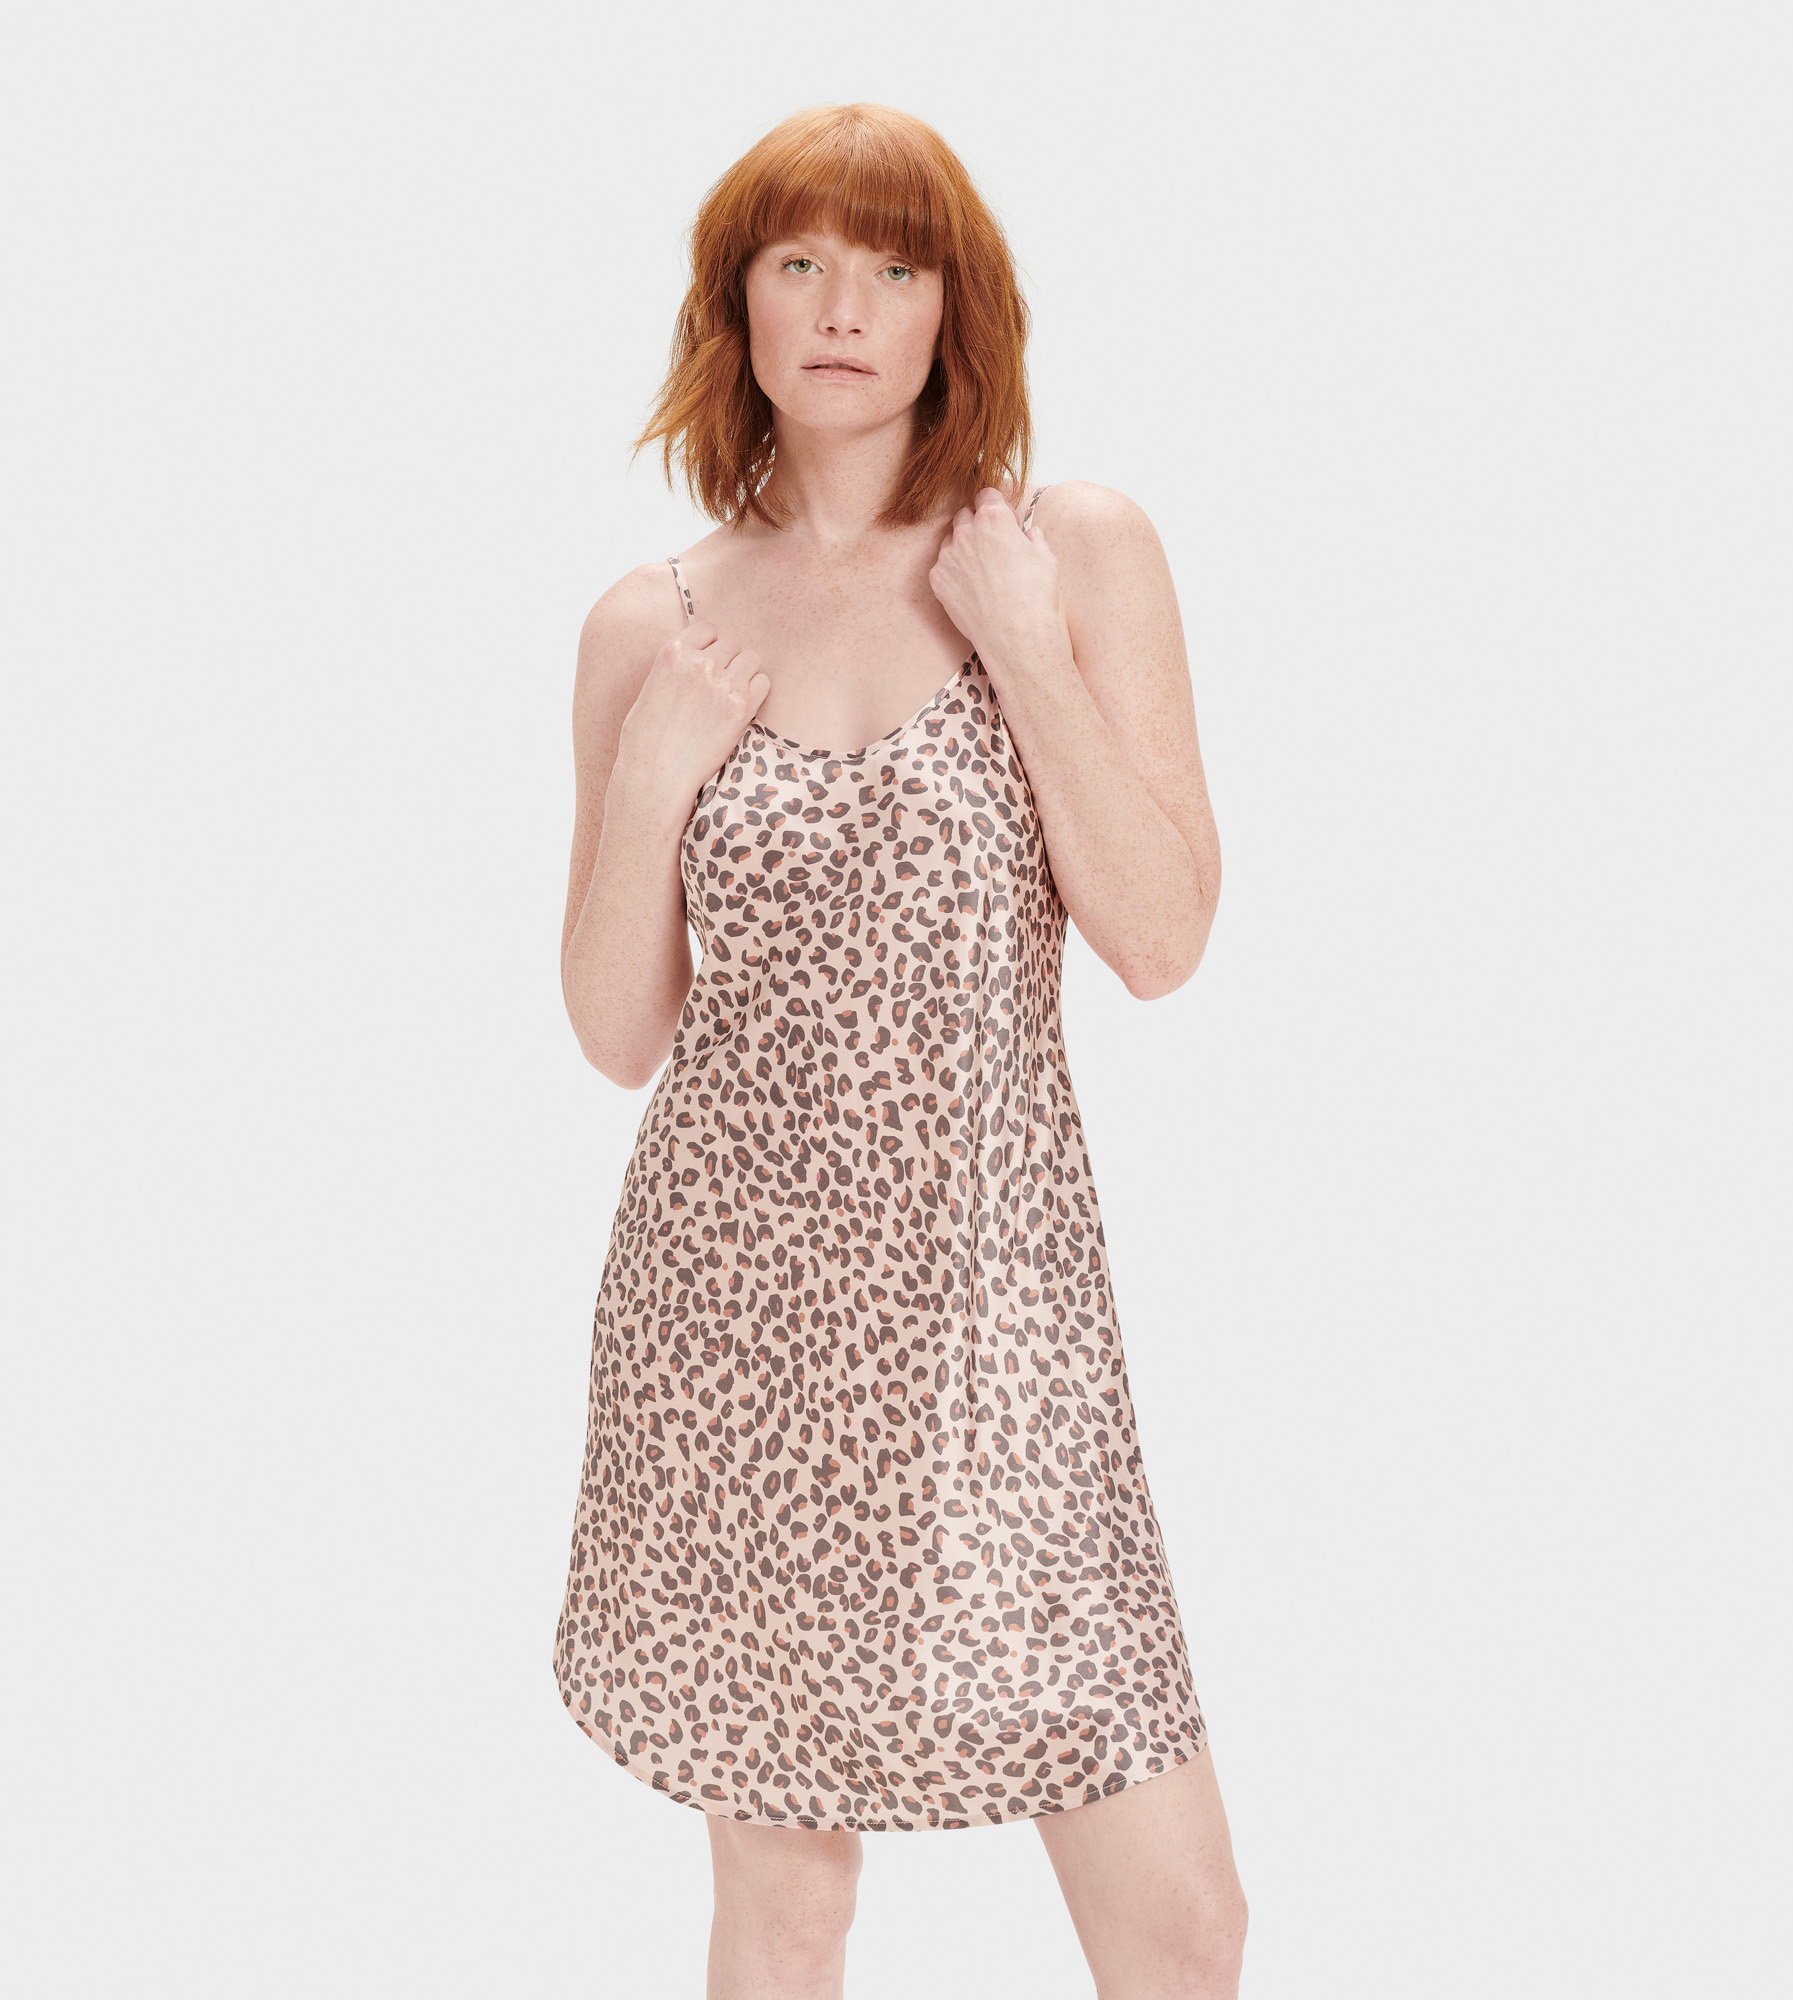 UGG Women's Theda Slip Dress Silk Dresses in Pink, Size XL Made from 100% silk, this soft slip dress features adjustable slider straps for the perfect fit. Ideal for wearing out, you'll love the way the smooth silk feels on your skin. 100% Silk Slip Dress. Adjustable straps with sliders. Center back 25 1/4  [Size S]. Dry Clean Only. UGG Women's Theda Slip Dress Silk Dresses in Pink, Size XL